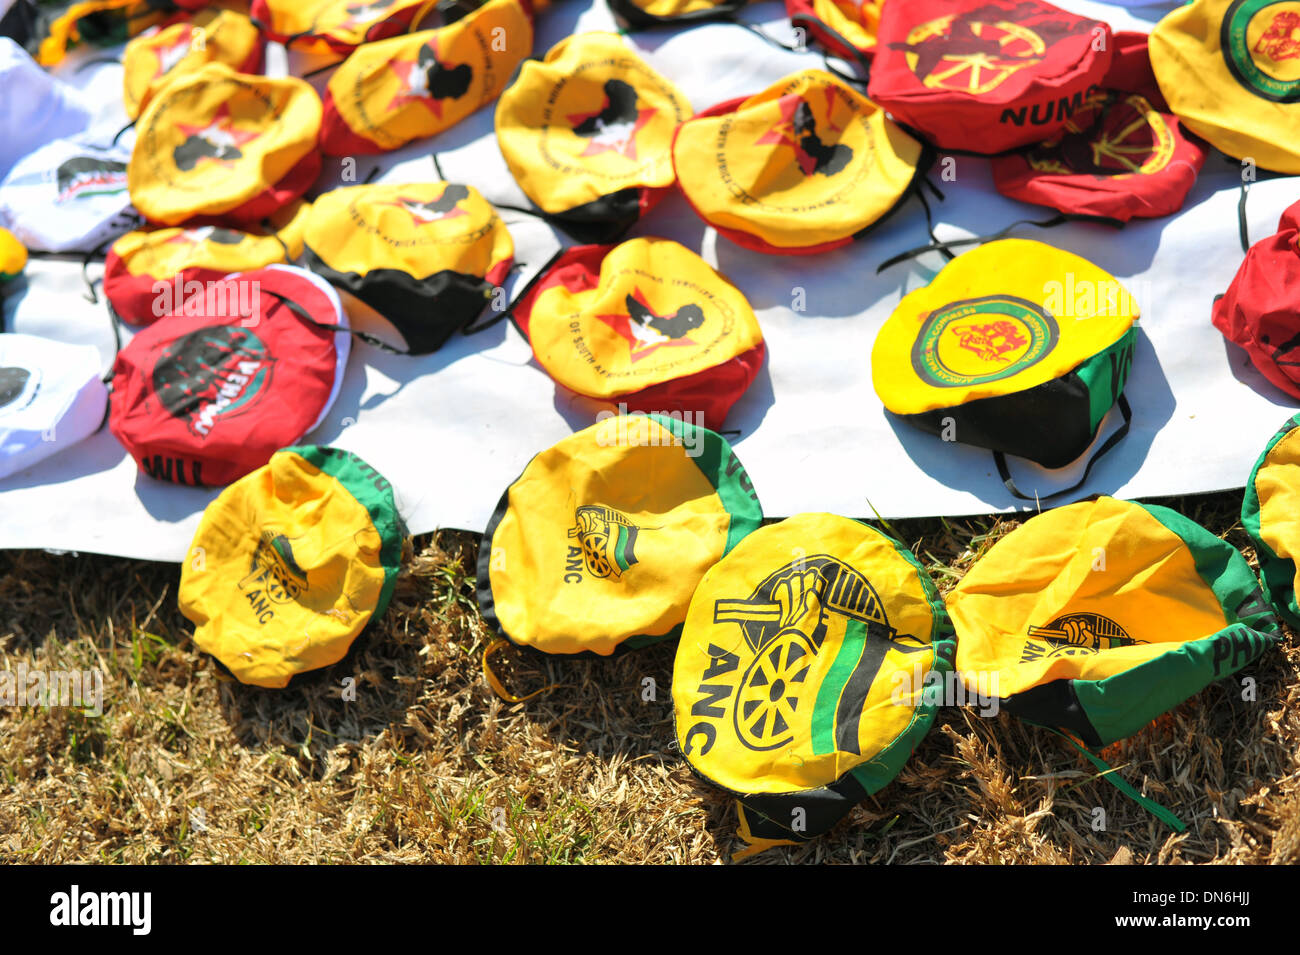 Lots of ANC hats on the ground at a protest in South Africa. - Stock Image